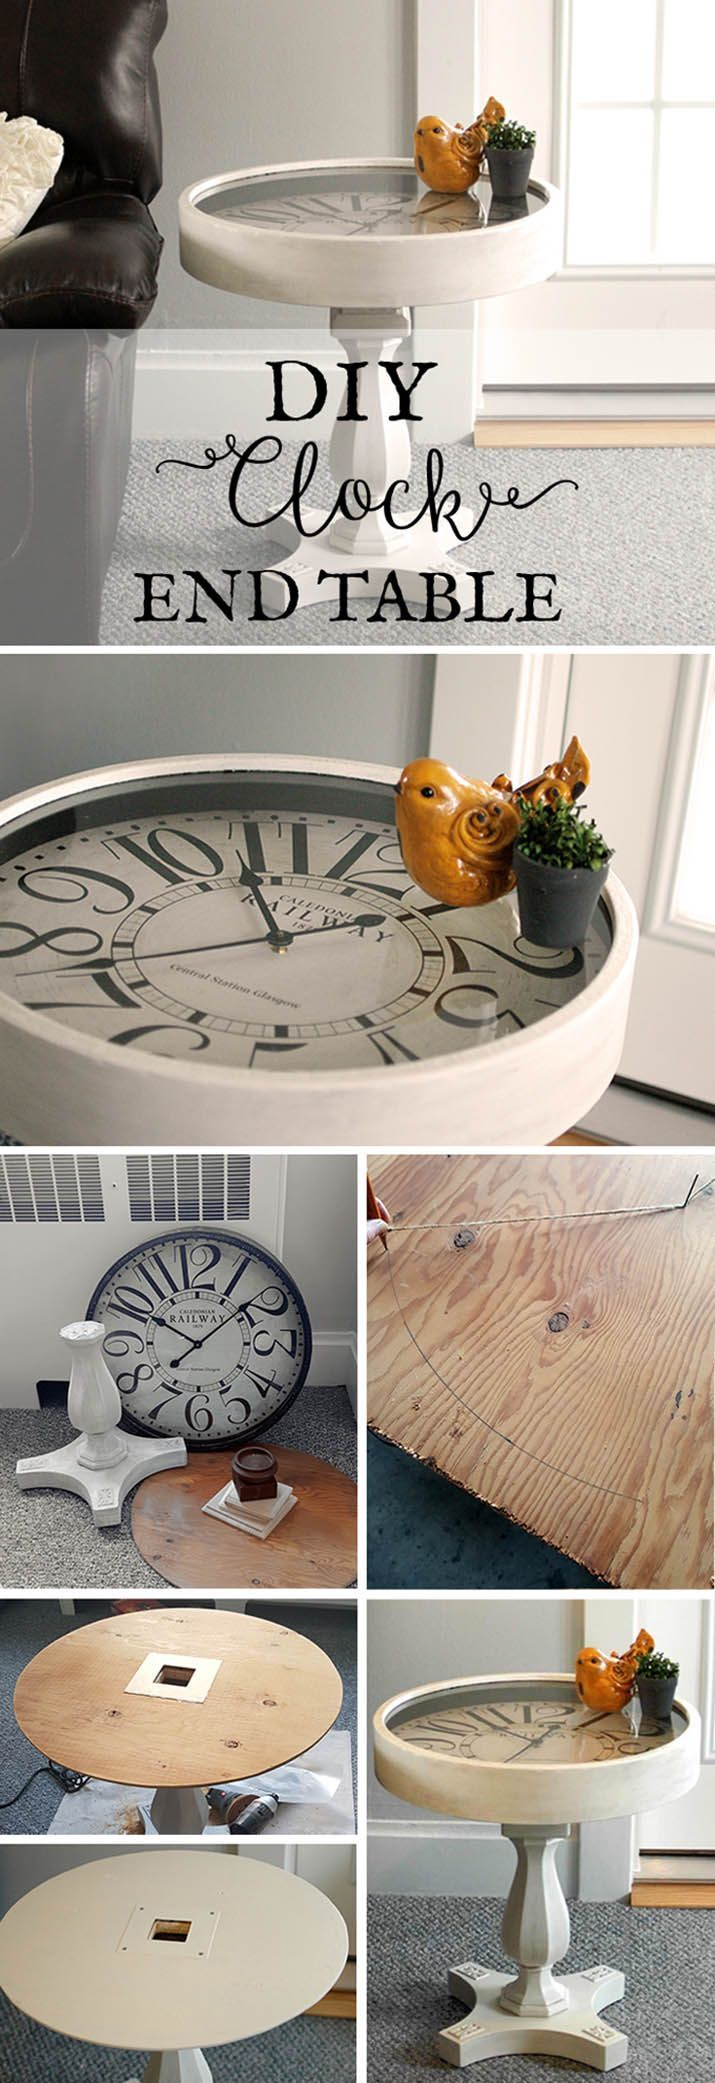 Table horloge - My plan all along was for the clock to actually work, which meant I had to be able to access the battery box to change batteries and set the time... via @ohjuliana_